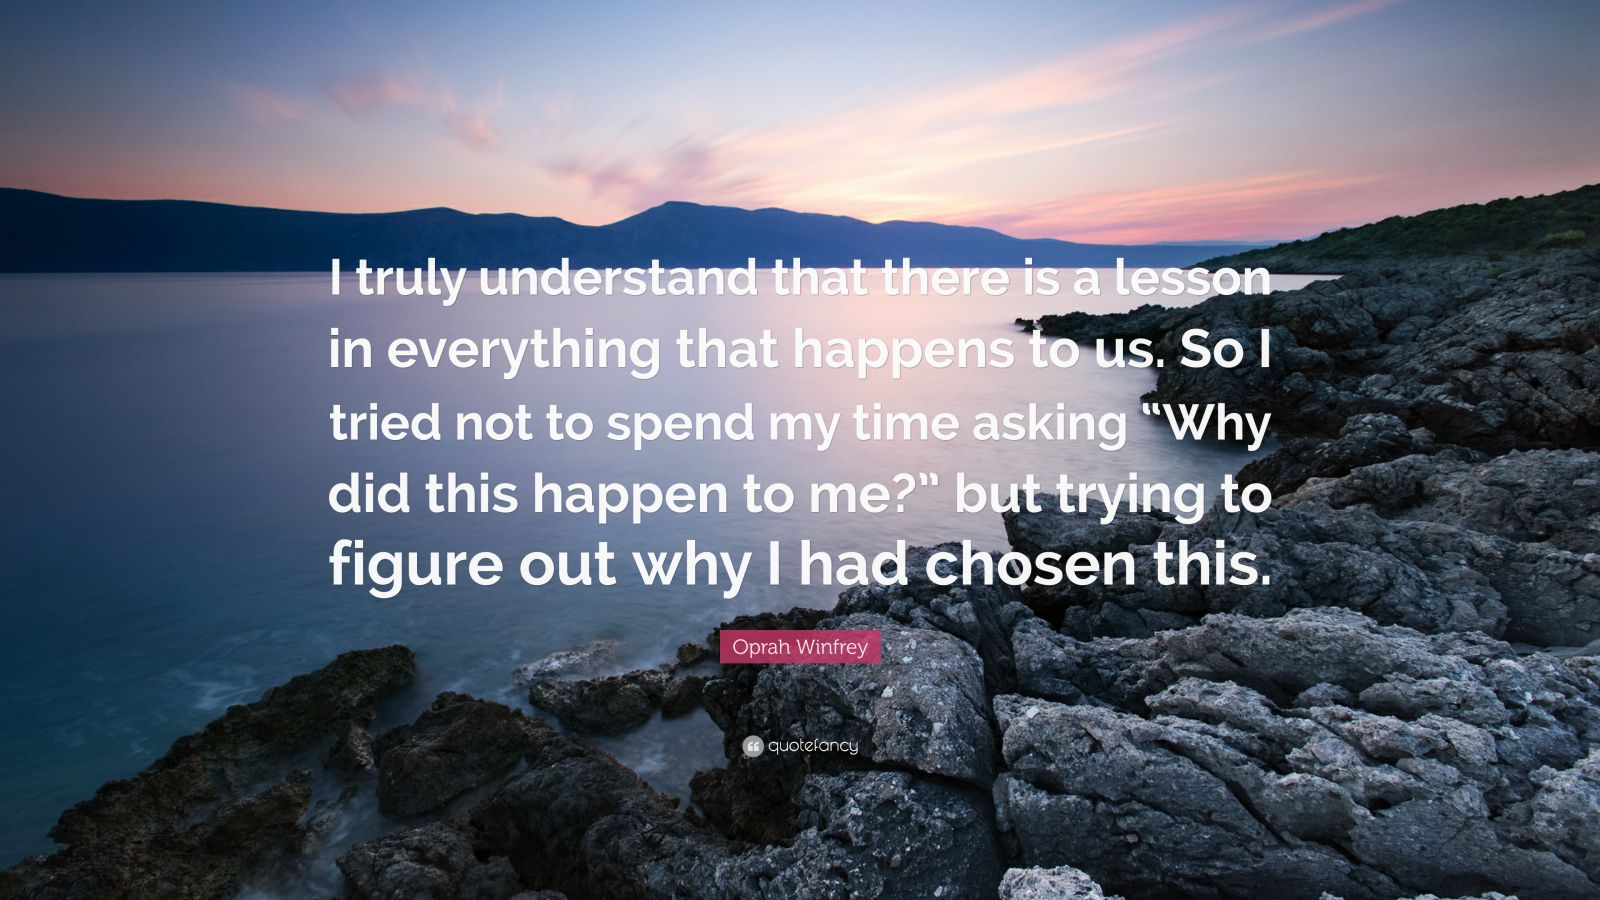 """Oprah Winfrey Quote: """"I truly understand that there is a lesson in everything that happens to us. So I tried not to spend my time asking """"Why did this happen to me?"""" but trying to figure out why I had chosen this."""""""